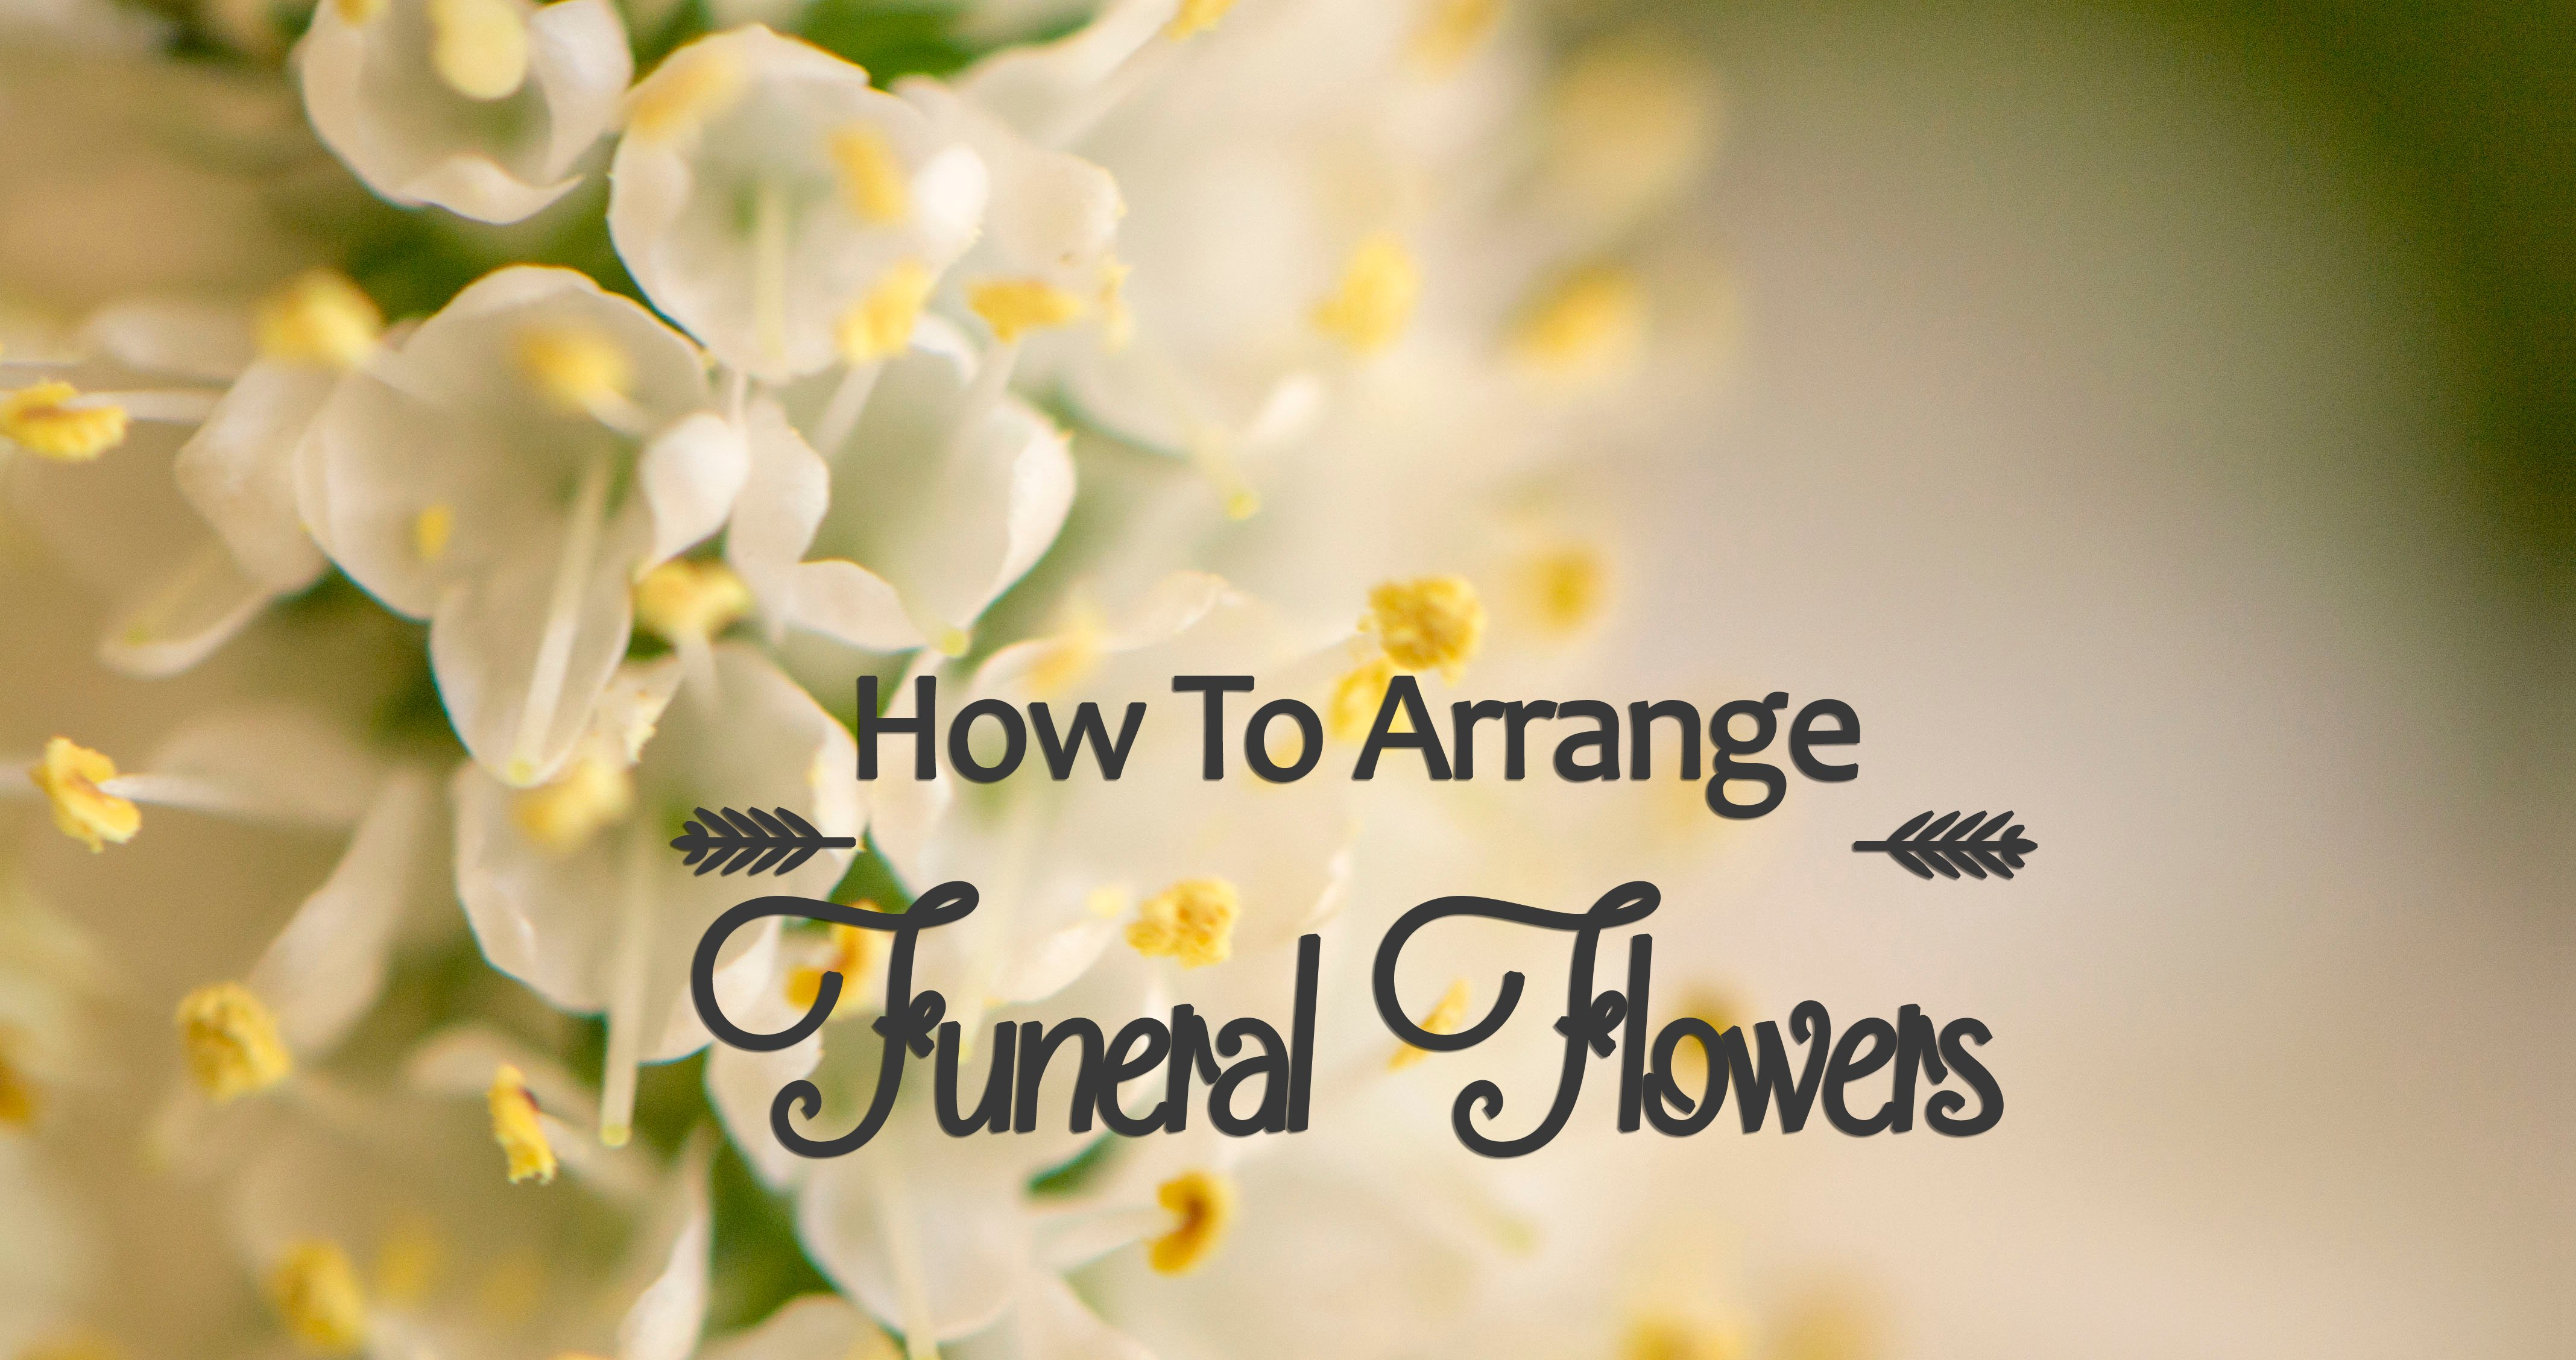 How to arrange funeral flowers